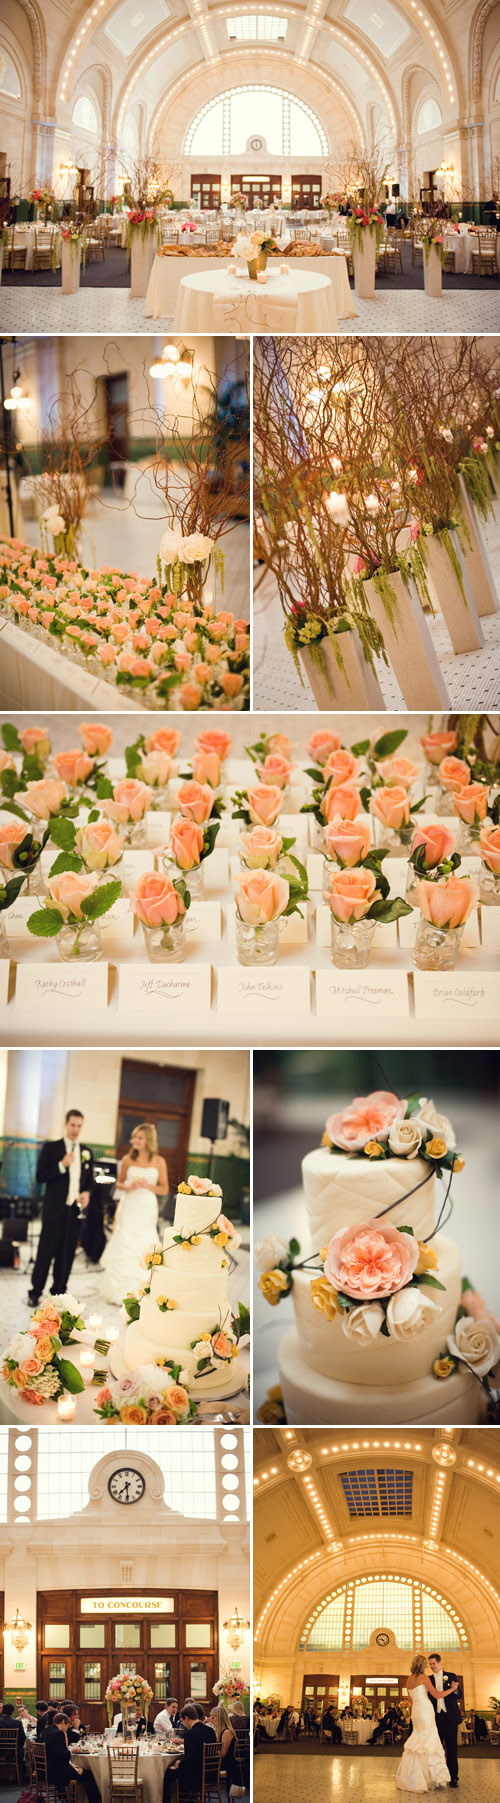 Ivory Gold Champagne And Peach Wedding Fl Decor At Union Station Seattle